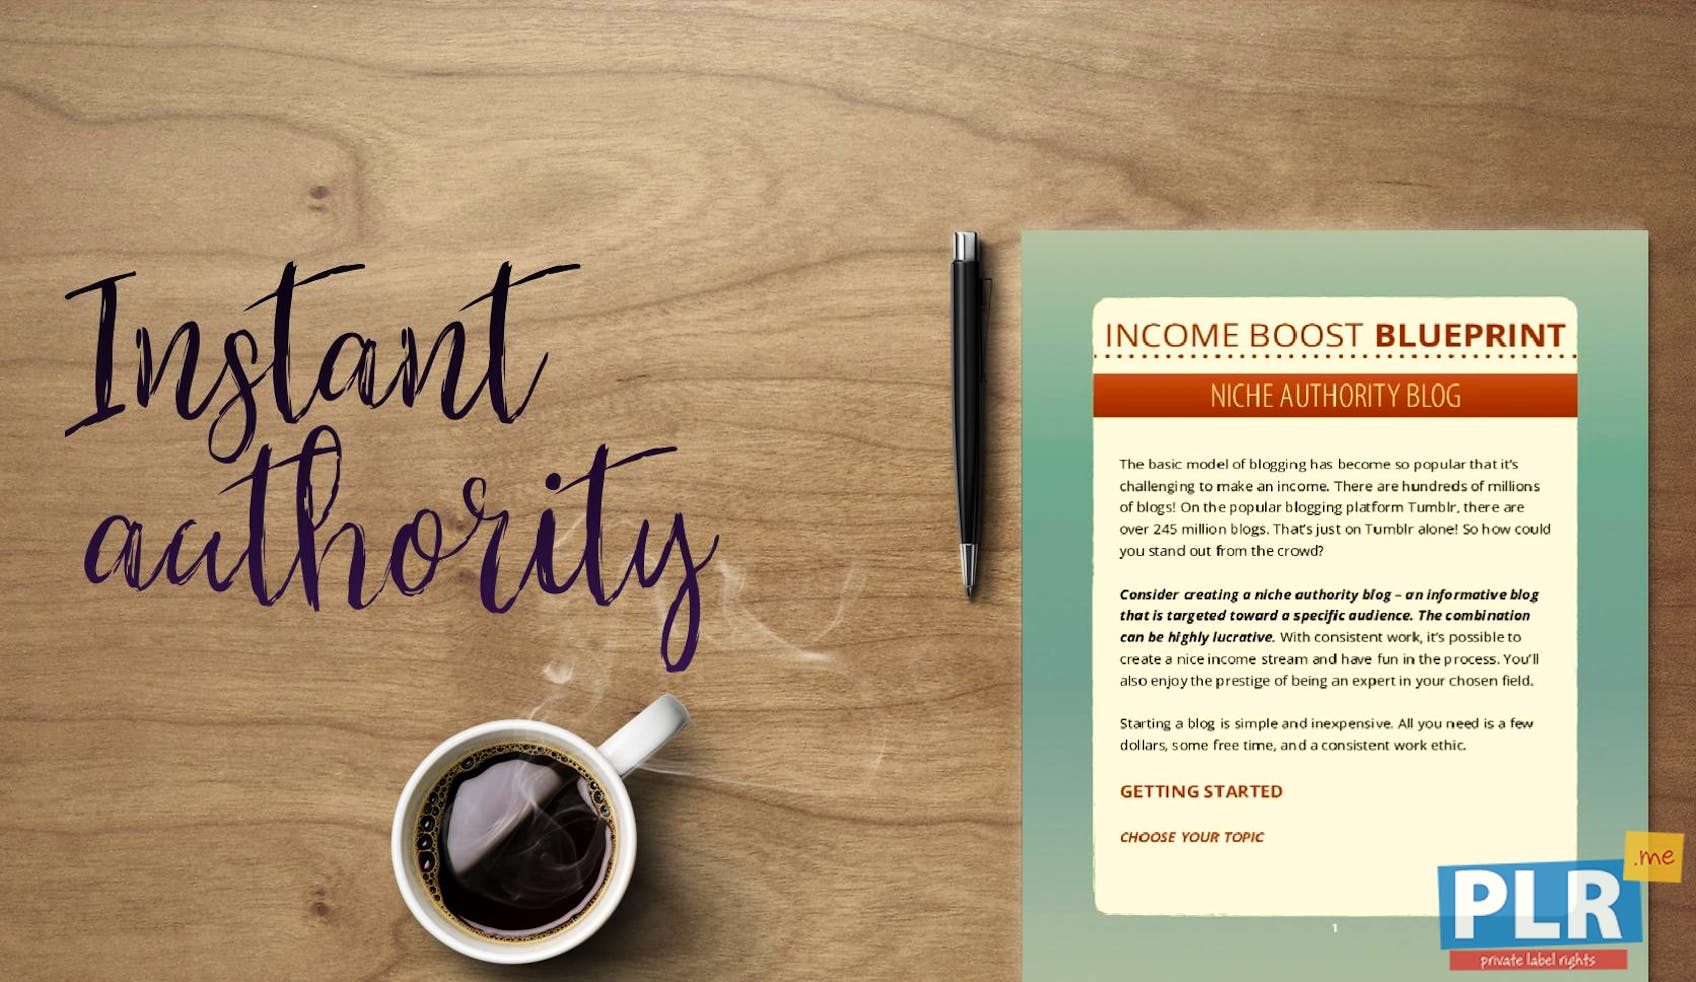 Income Boost Blueprint Niche Authority Blog